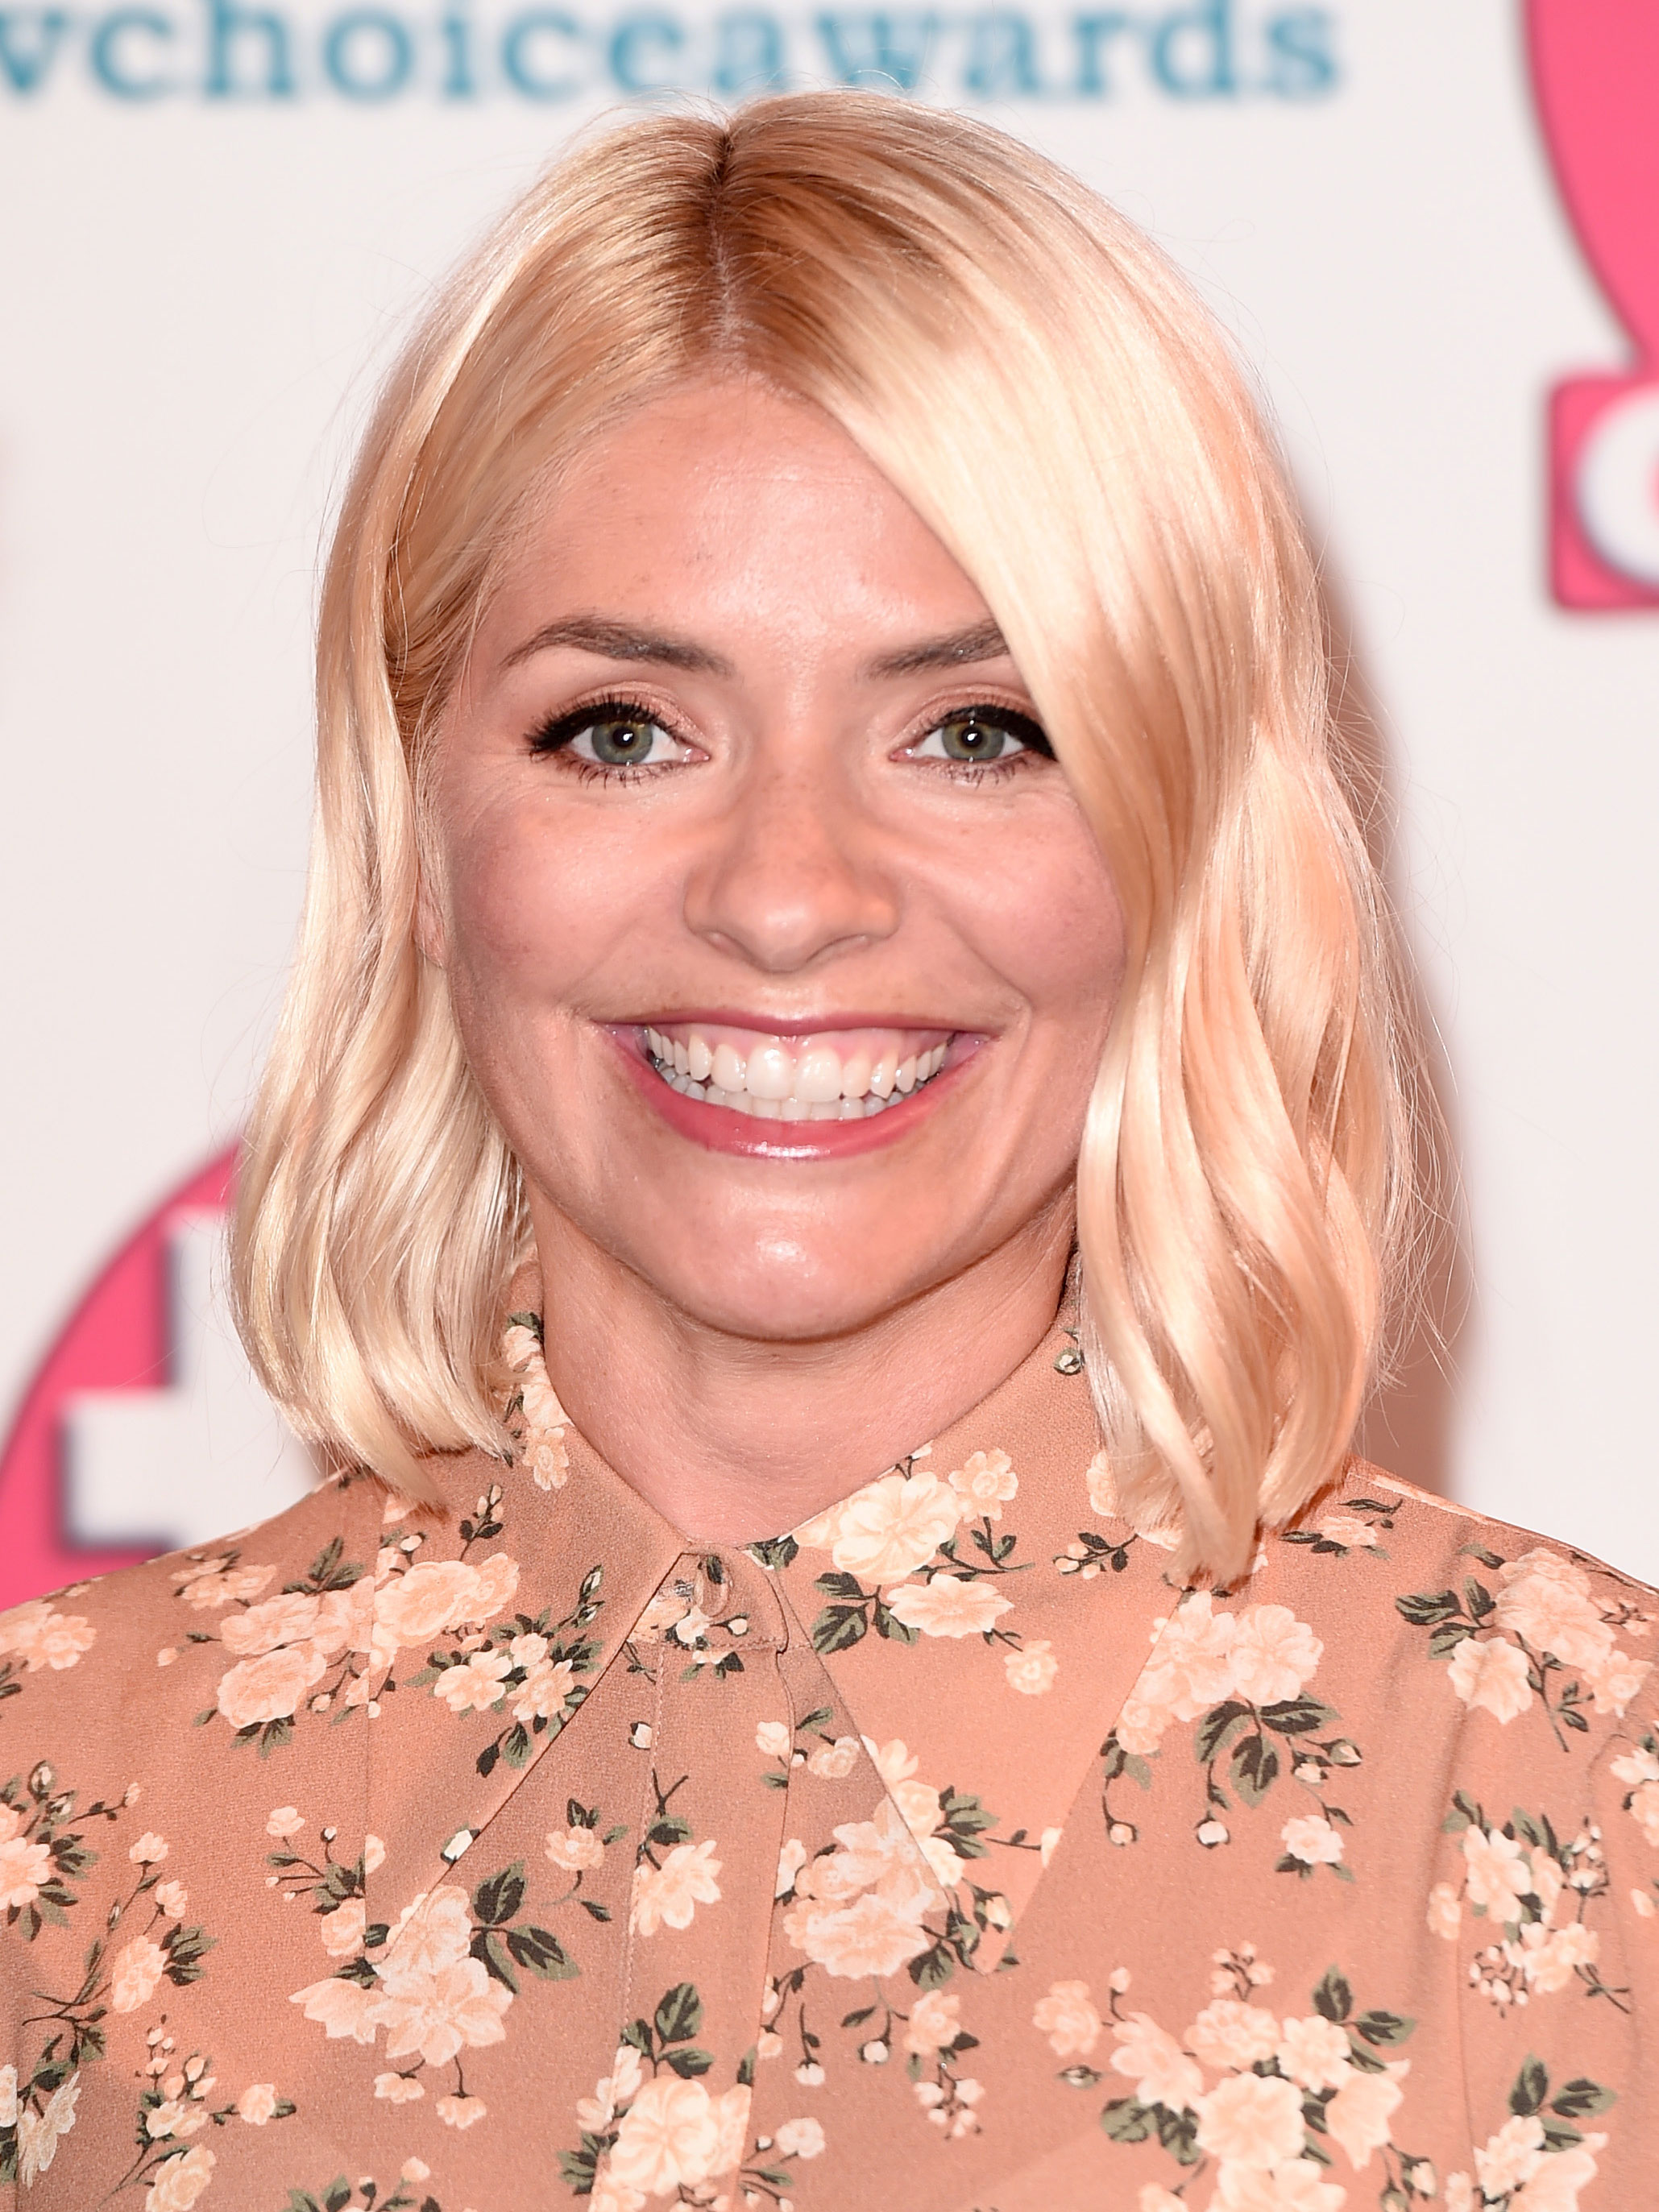 Holly Willoughby fans spot the most HILARIOUS thing about her outfit